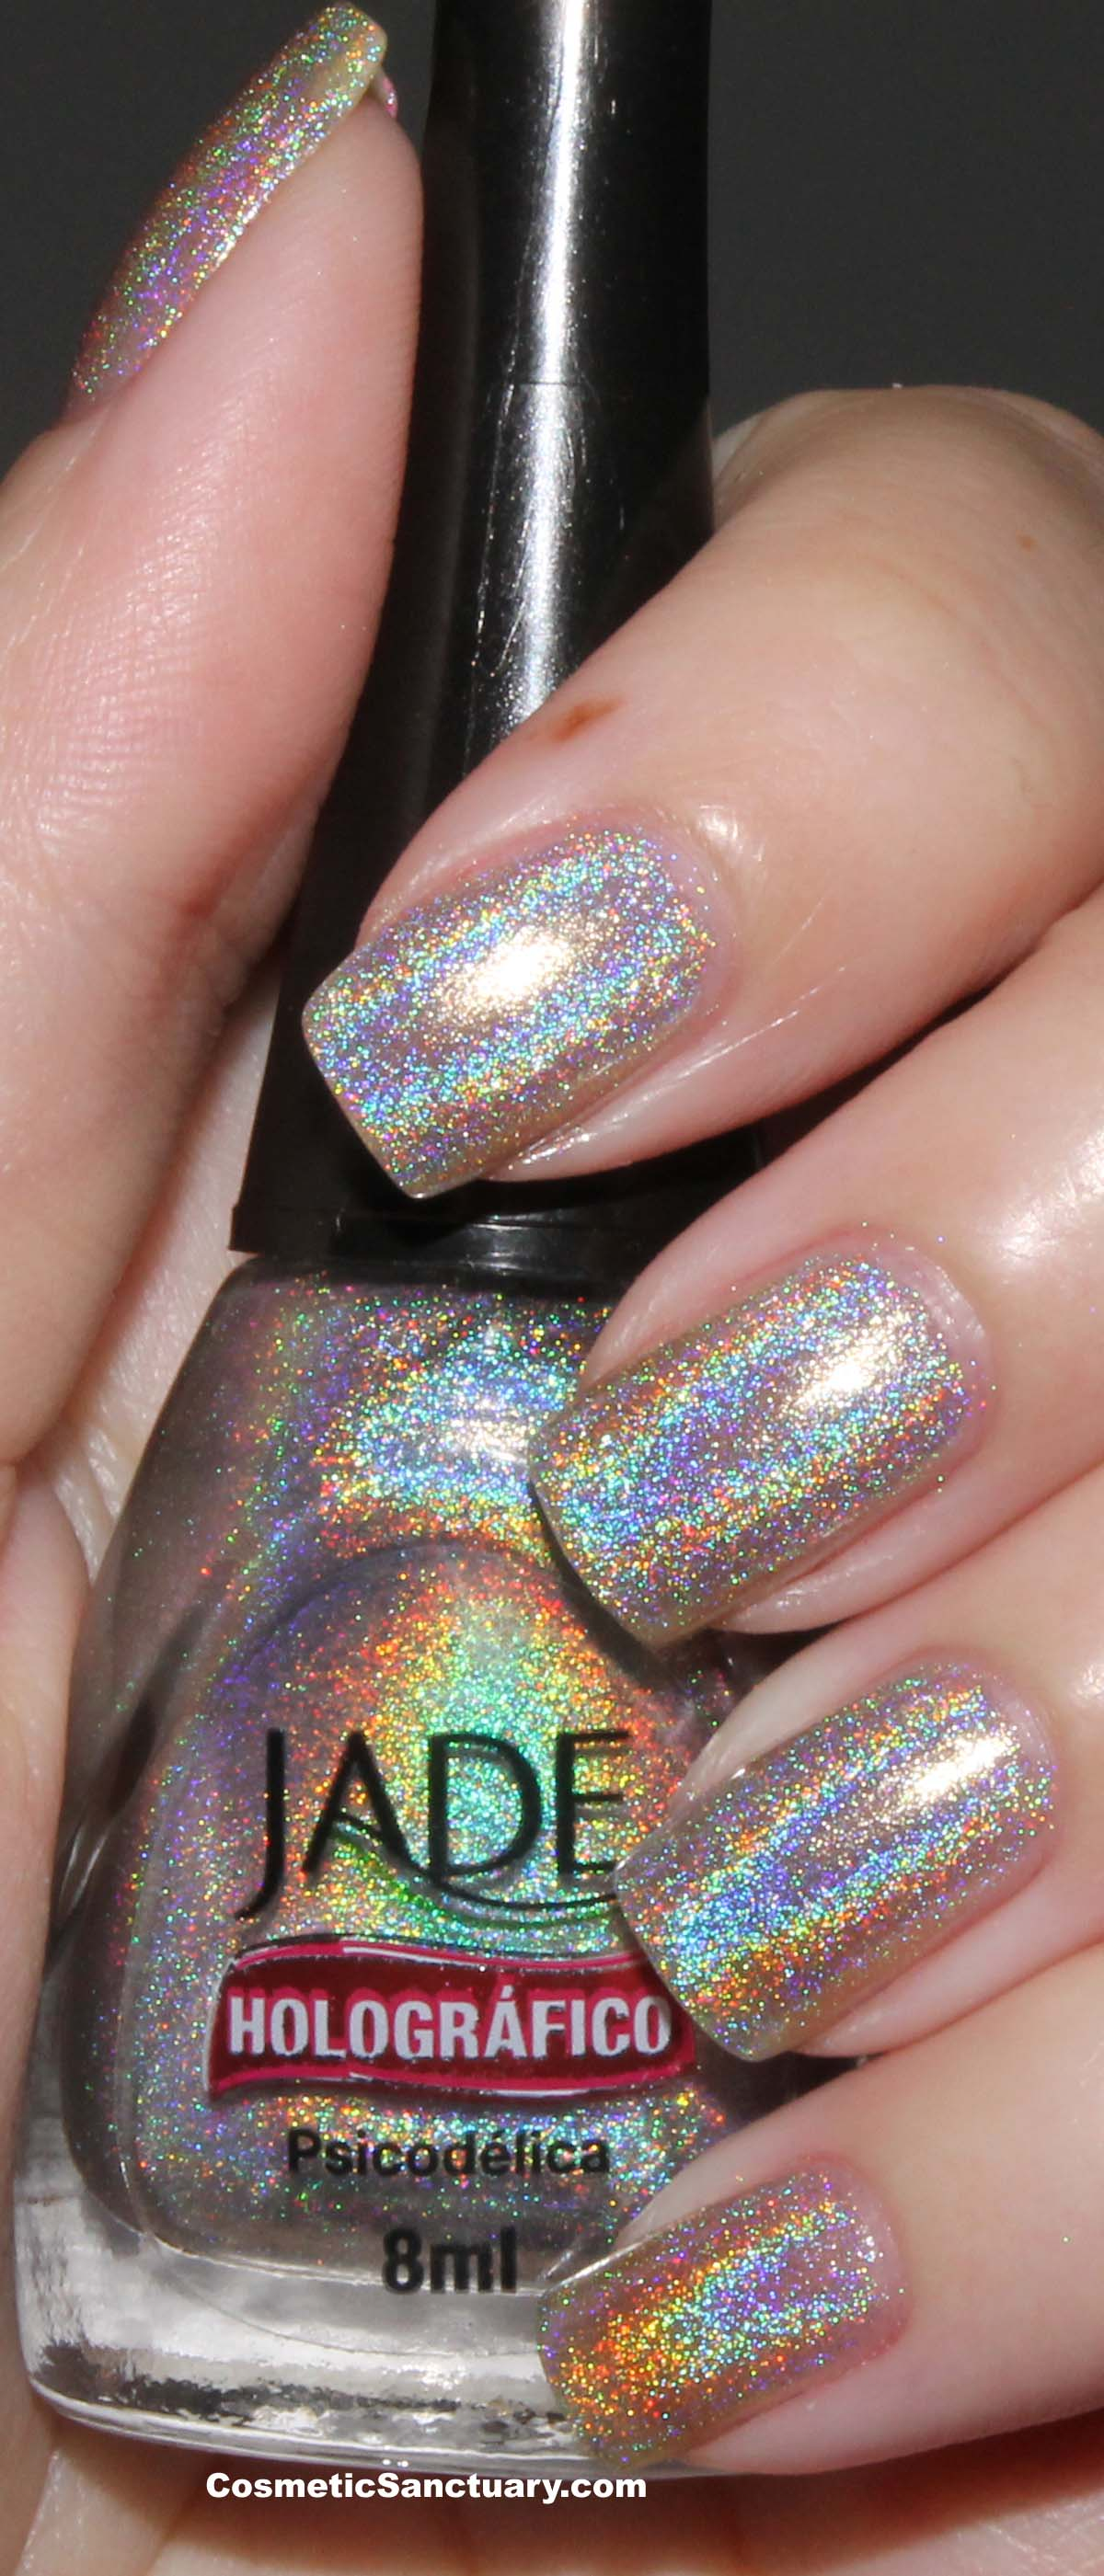 Jade Holographic Spam! Picture Heavy!